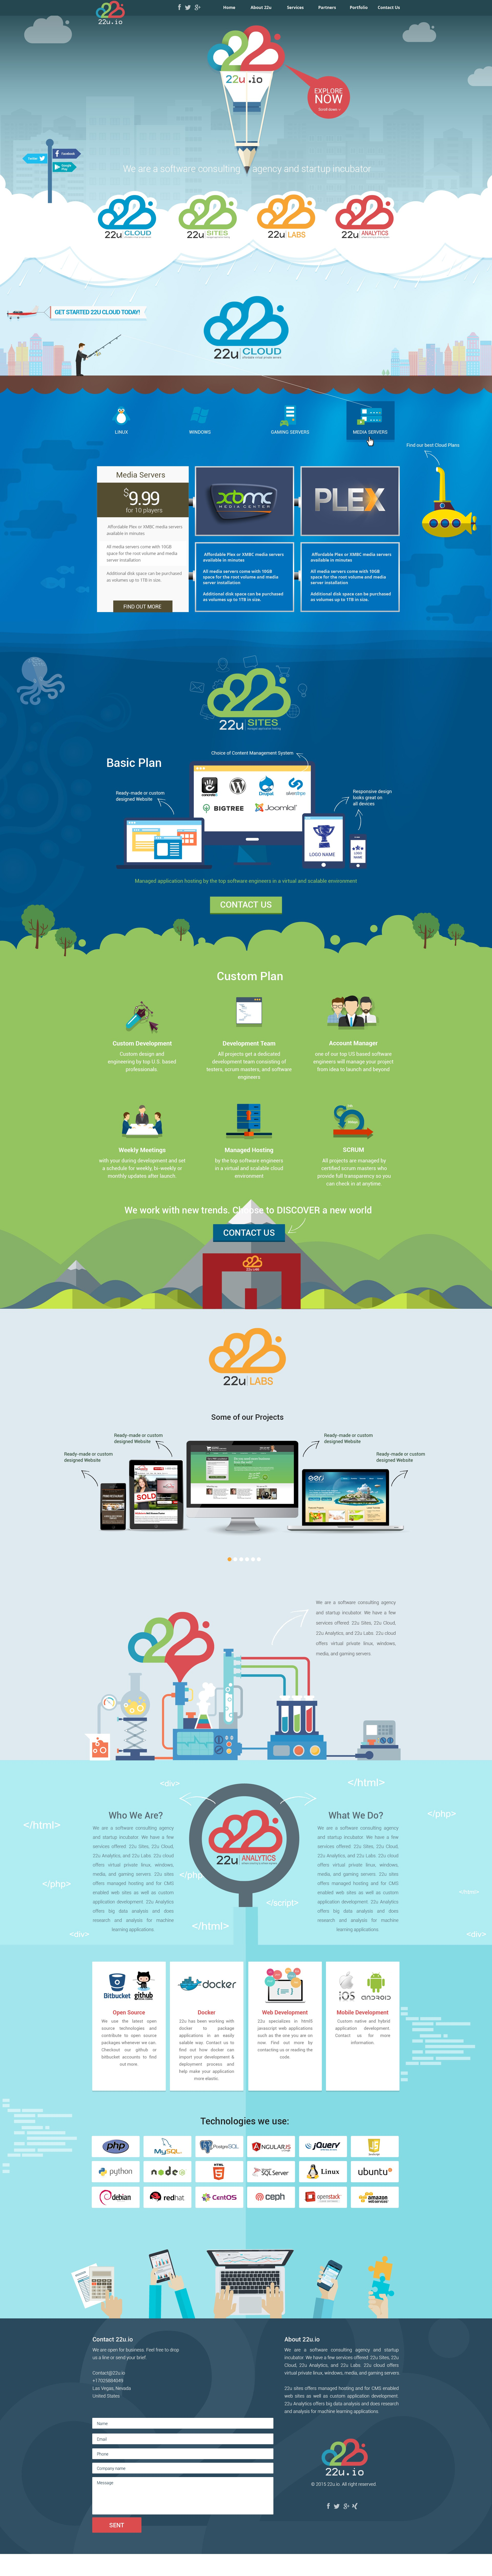 22u needs a Parallax Scrolling Website to entertain and WOW customers